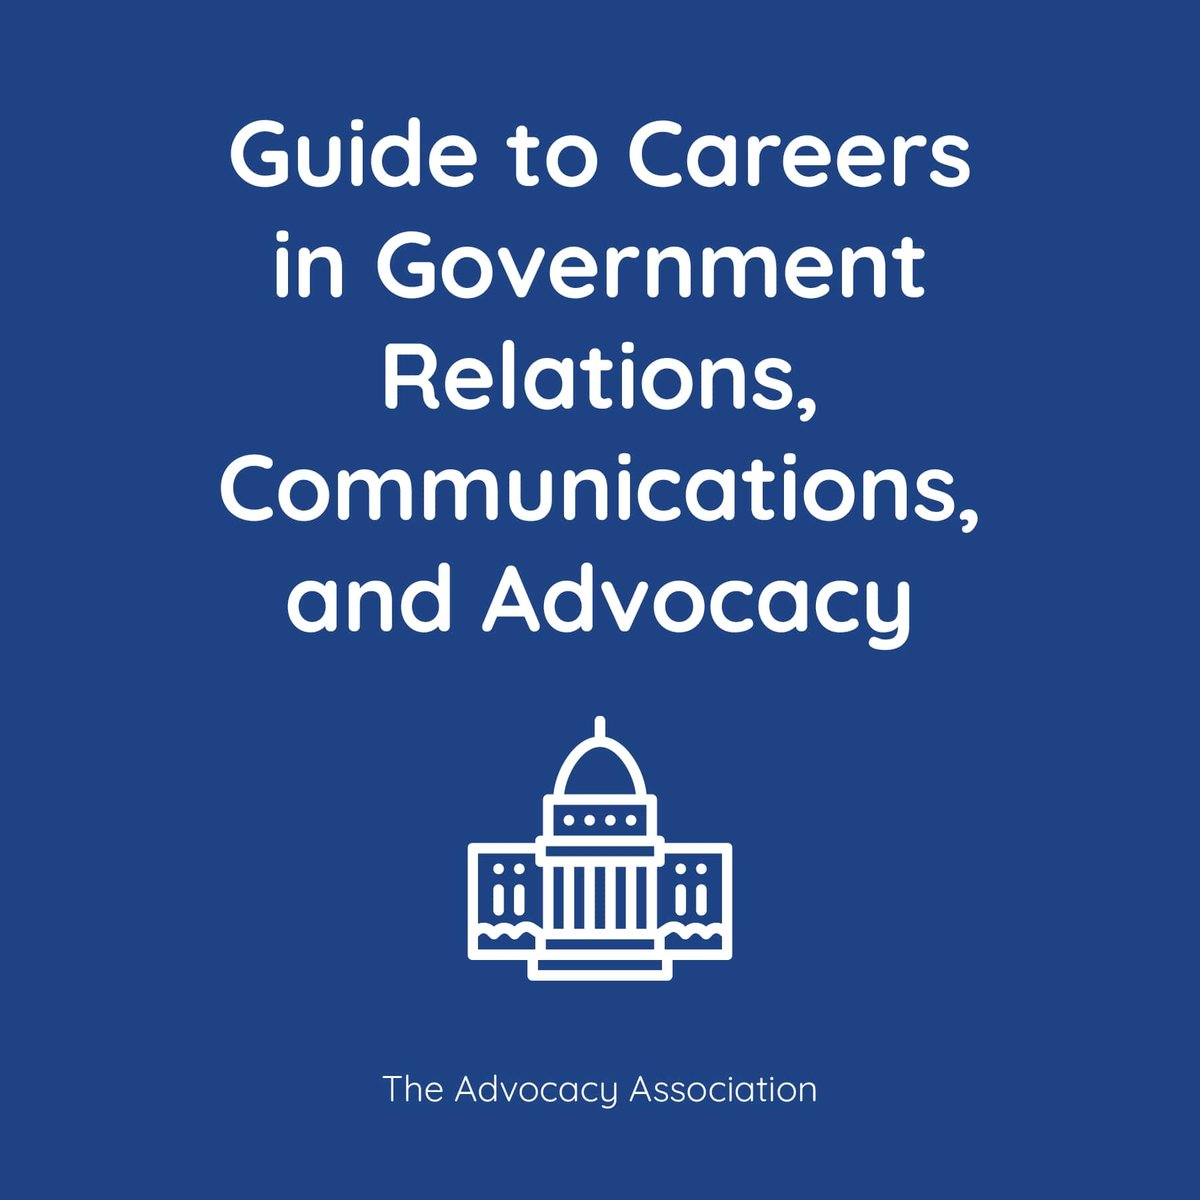 test Twitter Media - Thanks to the team at @AdvocacyUSA and e-book editors/coordinators Joshua Habursky & Mike Fulton for asking me to contribute to: A Guide to Careers in Government Relations, Communications & Advocacy.  Read this e-book! https://t.co/3lDnNpgmbw   #advocacy #grassroots https://t.co/NCsV1UlyTg